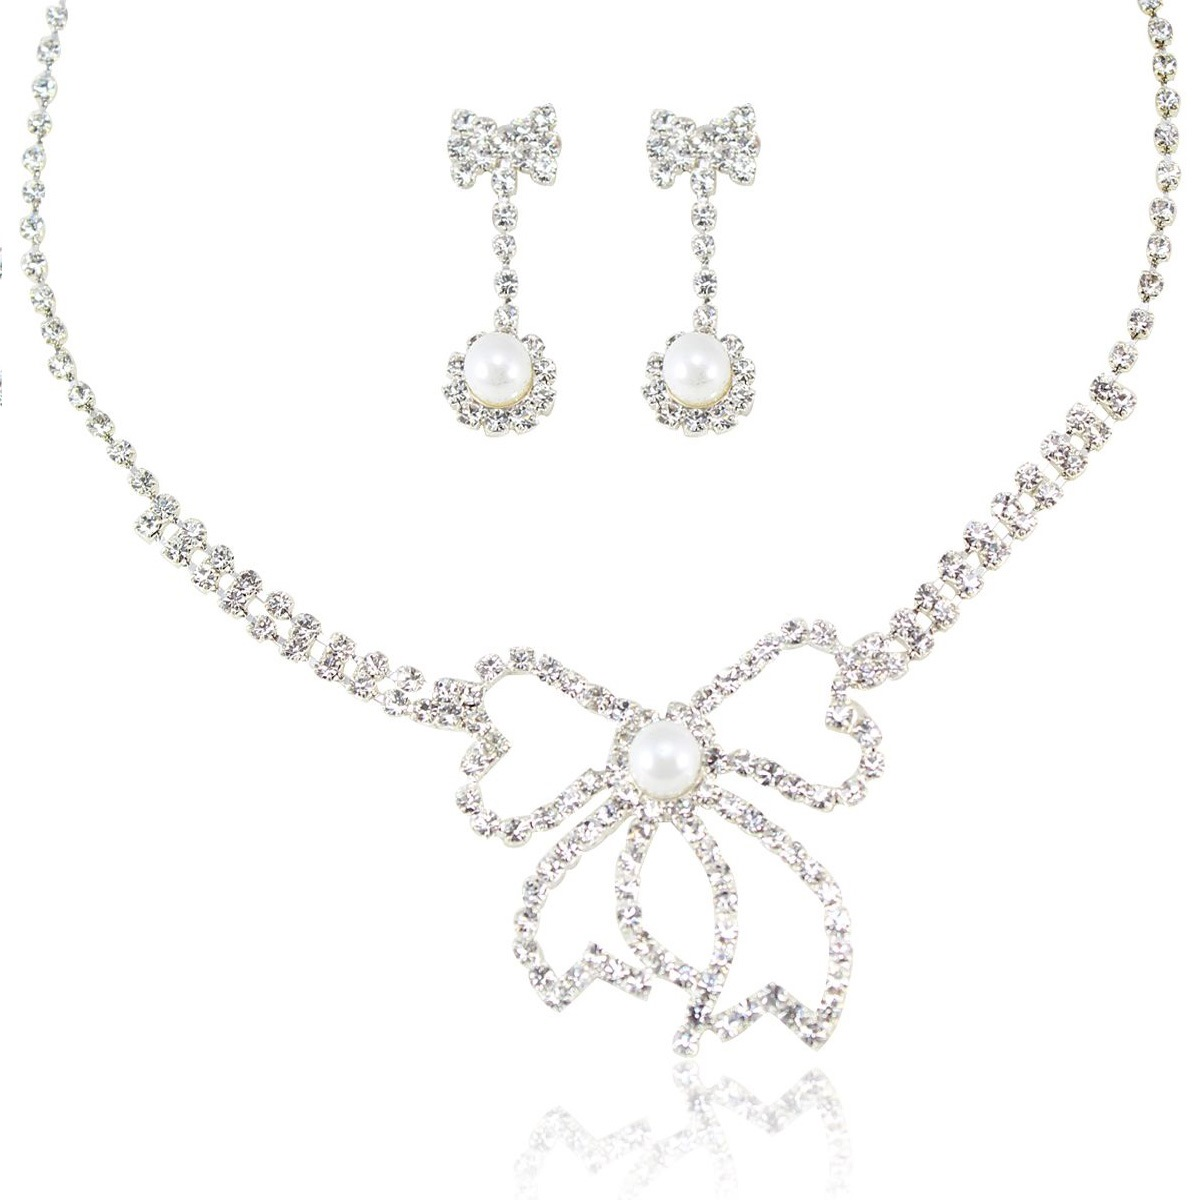 Pearl Wedding Bridal Jewelry Set with Flower Shaped Connector(Including Necklace and Earrings)